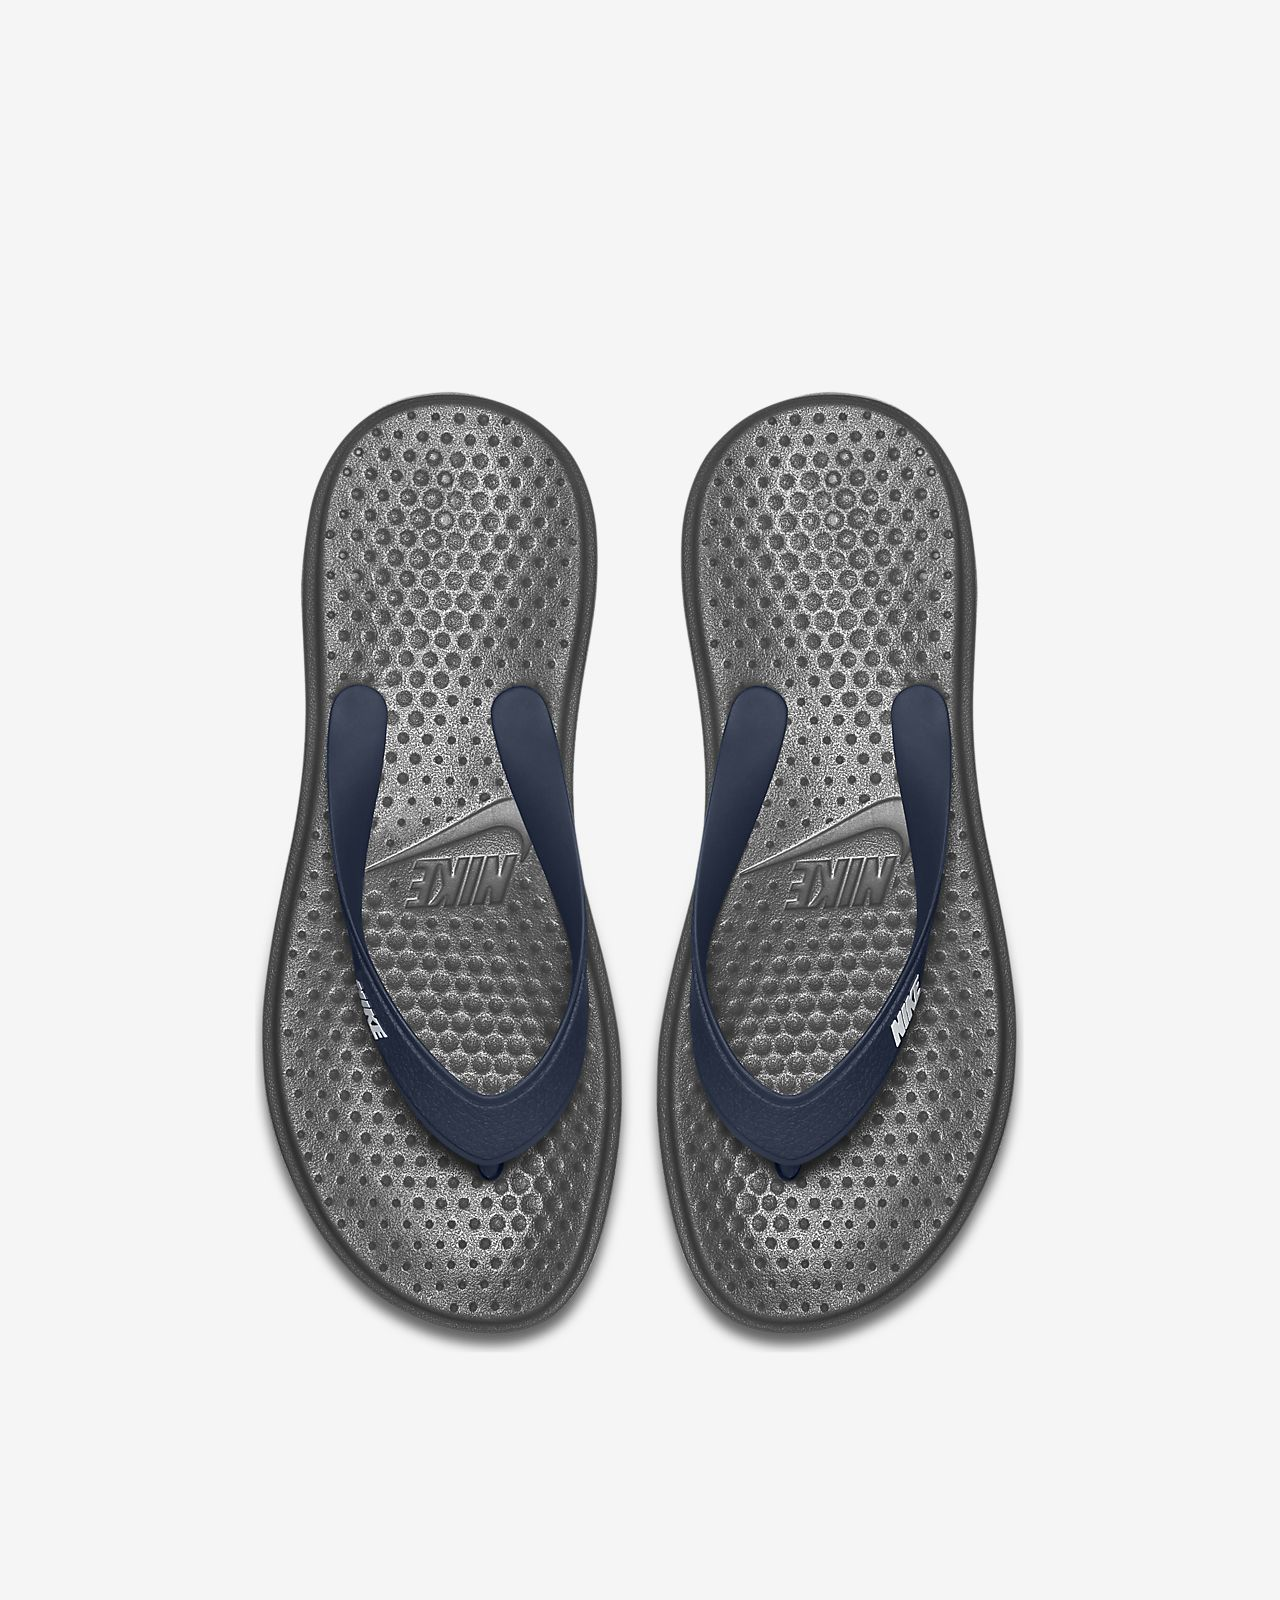 new concept 33b42 c7451 ... Nike Solay Men s Flip-Flop